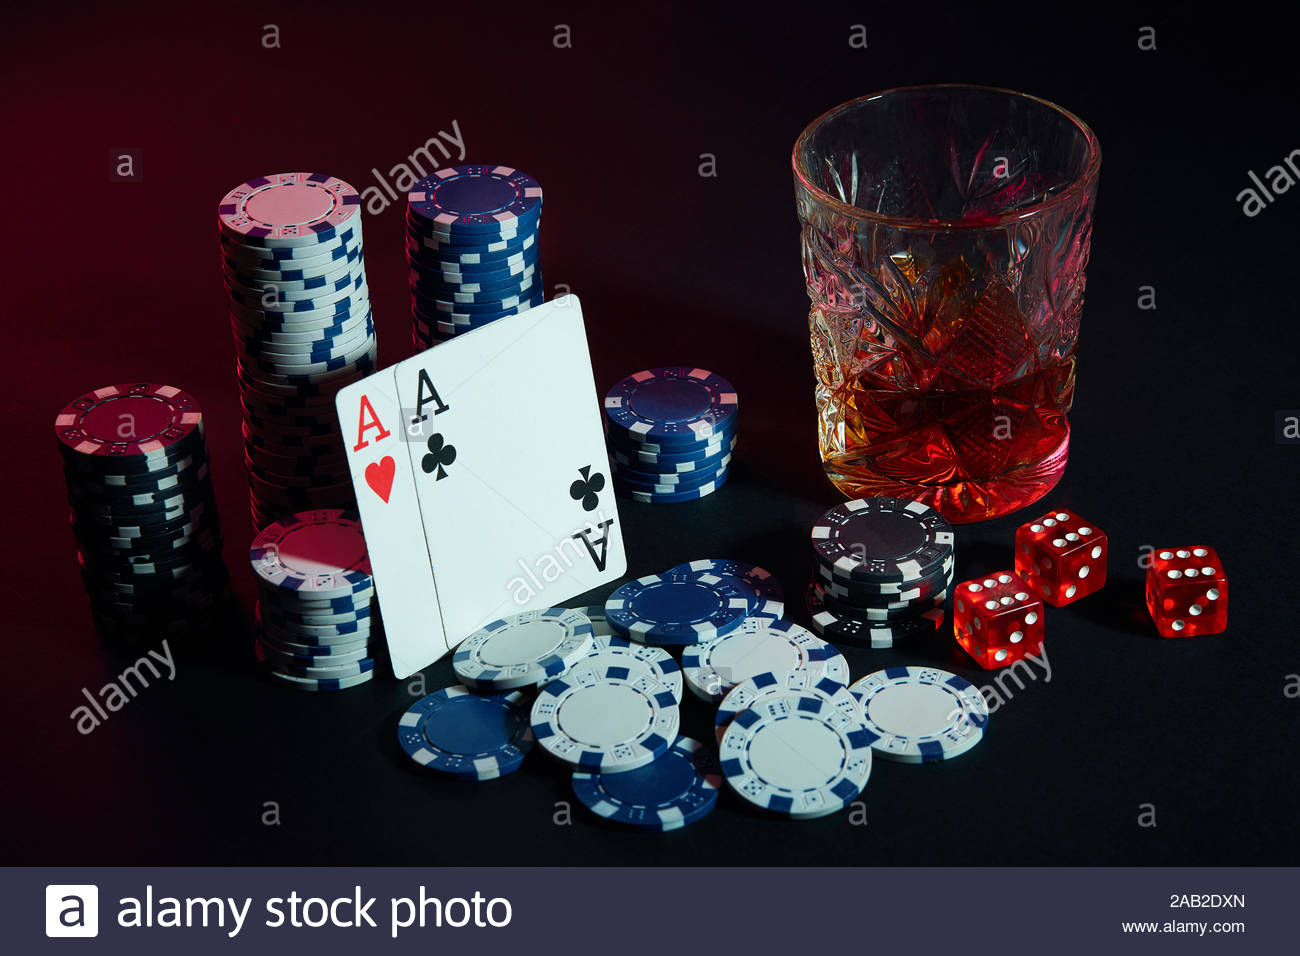 Casino - Are You Ready For a great Thing?